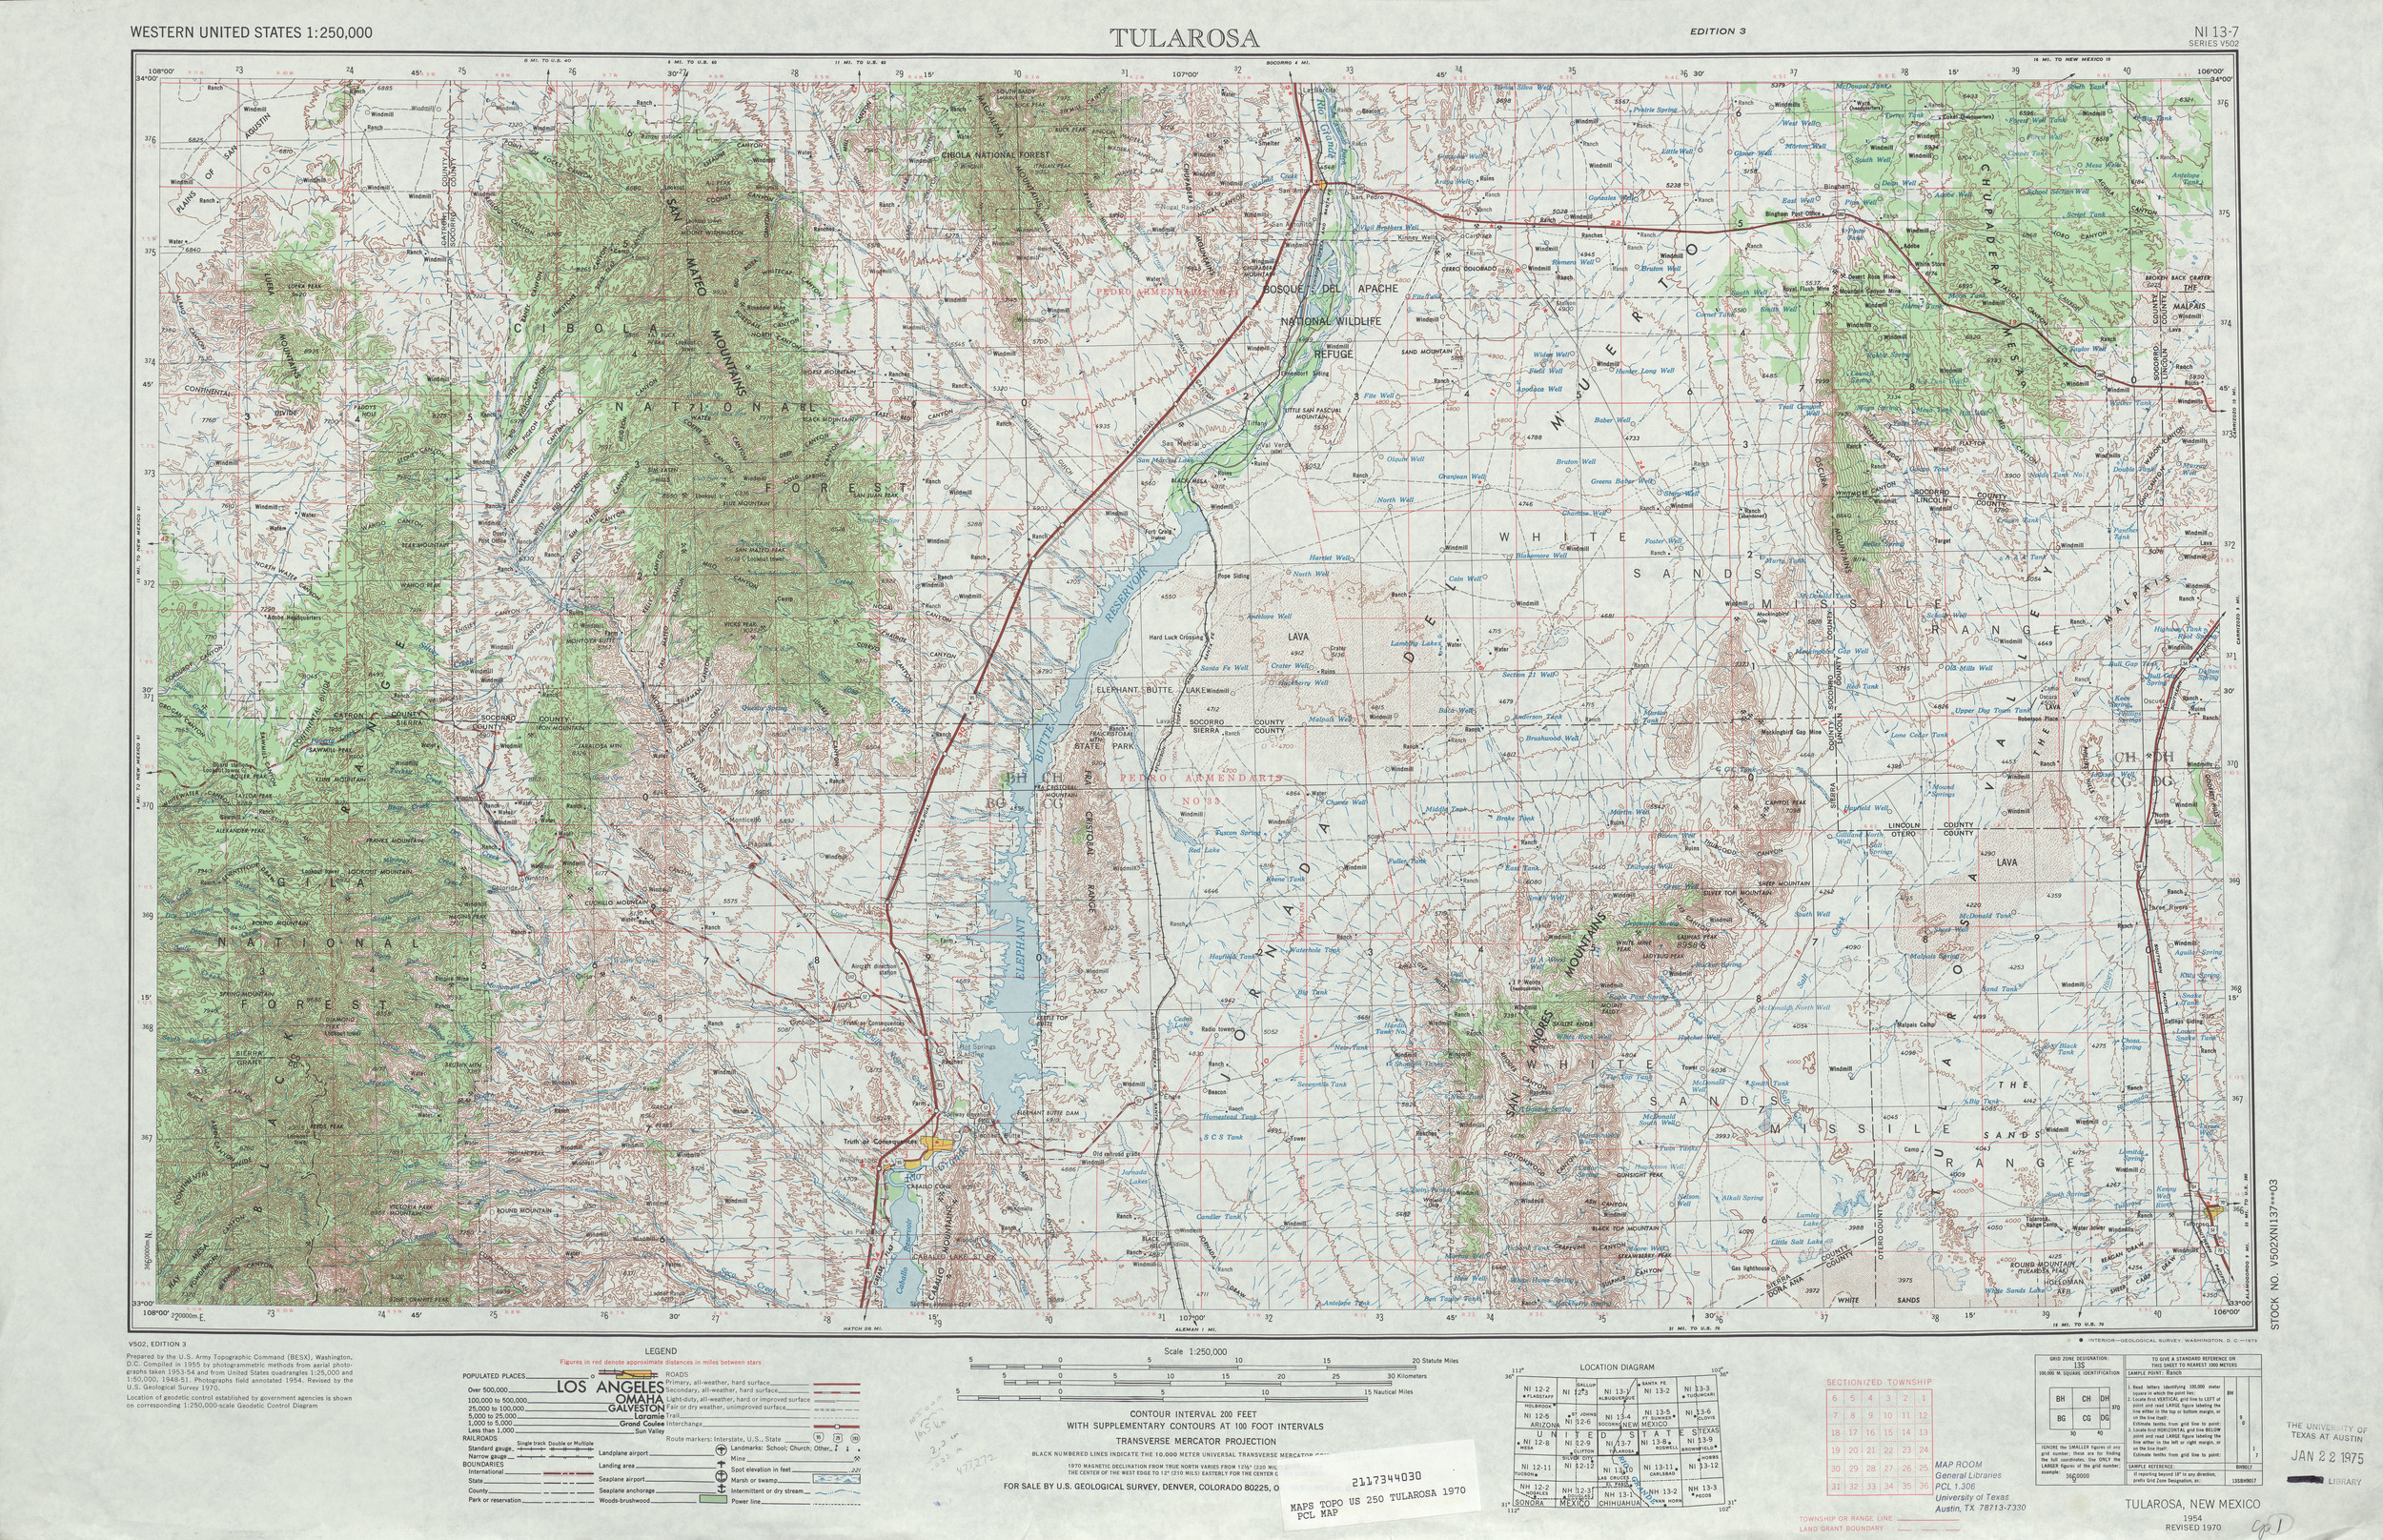 A map of the Tularosa region of New Mexico